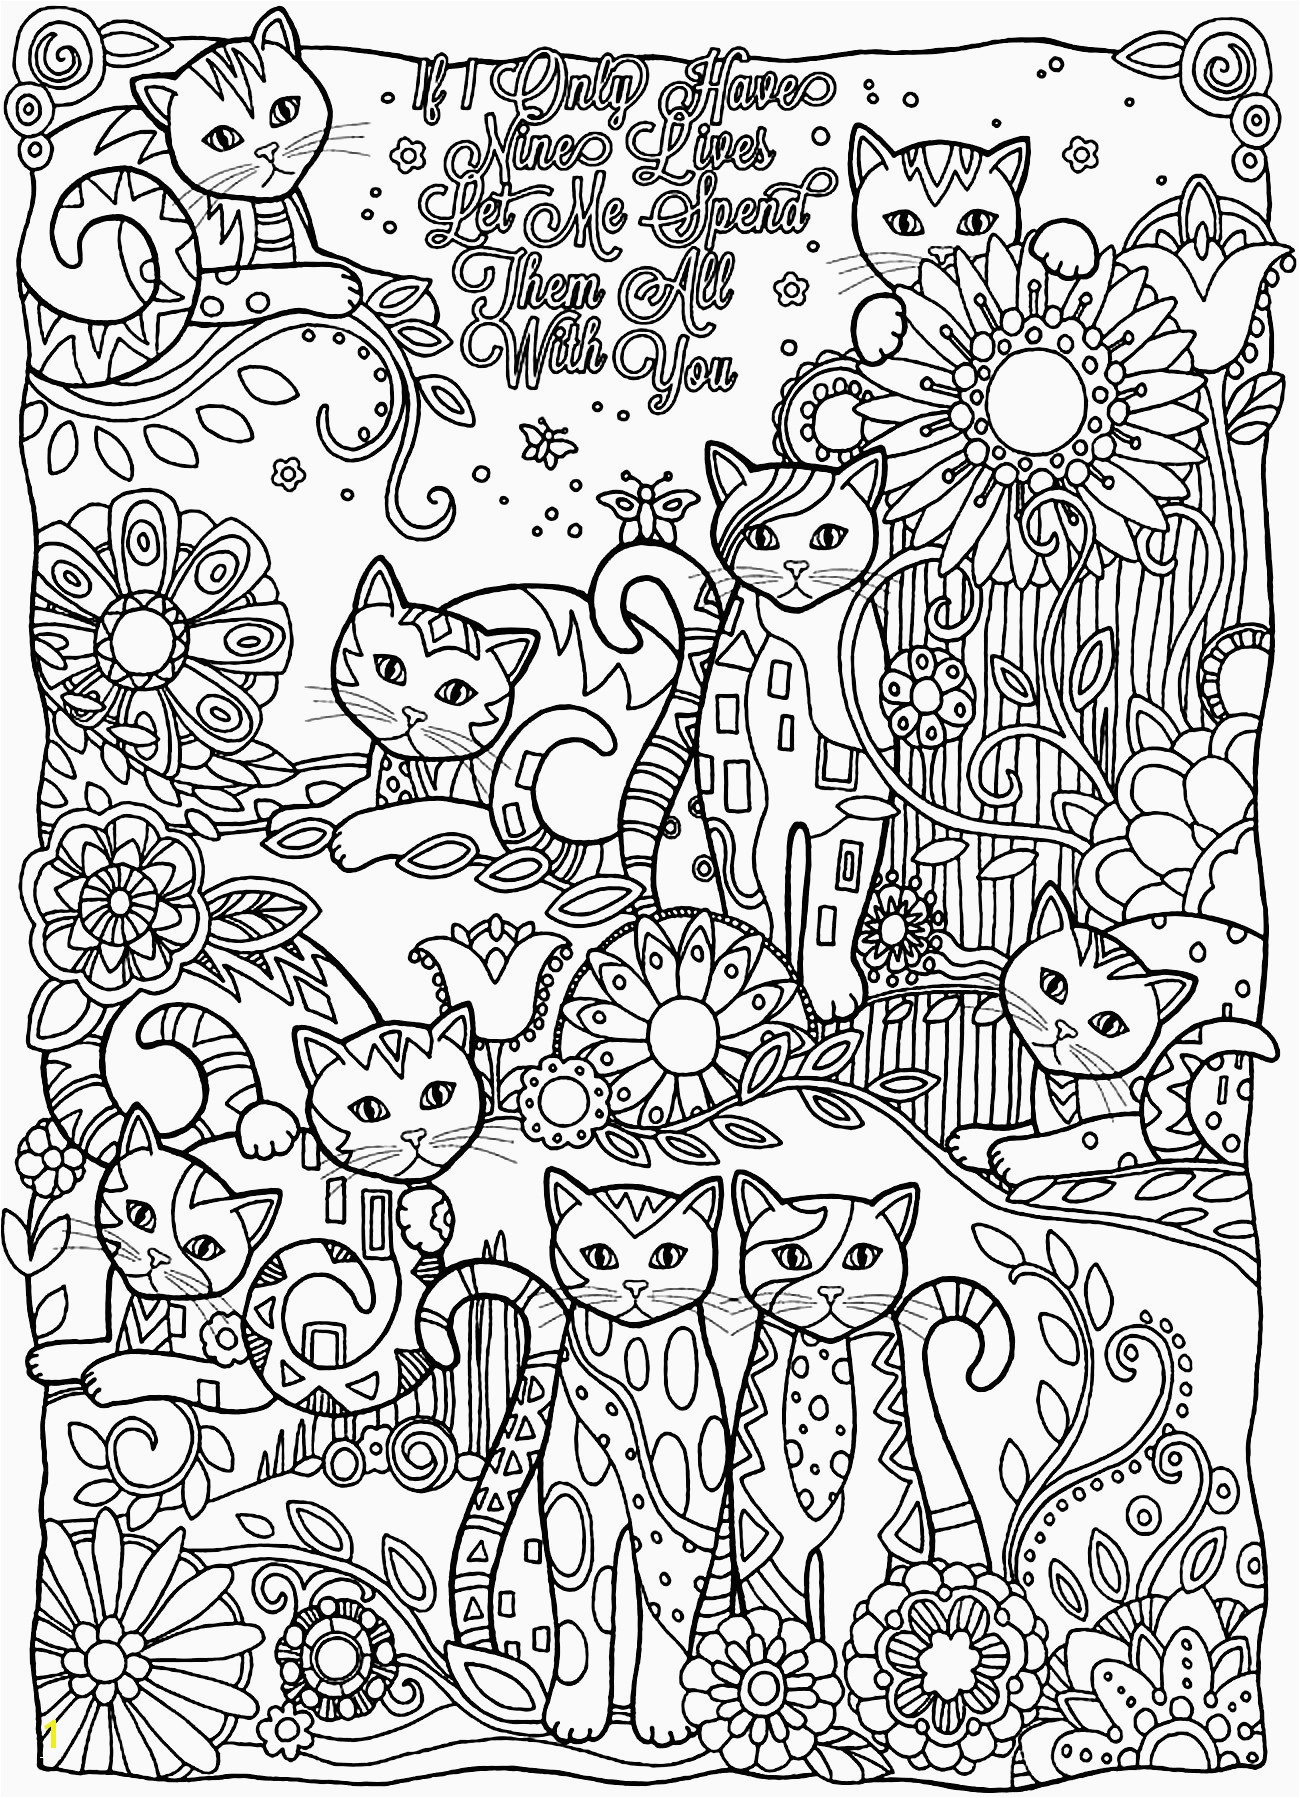 Coloring Heets Best Free Bird Coloring Pages Awesome Best Od Dog Coloring Pages Free